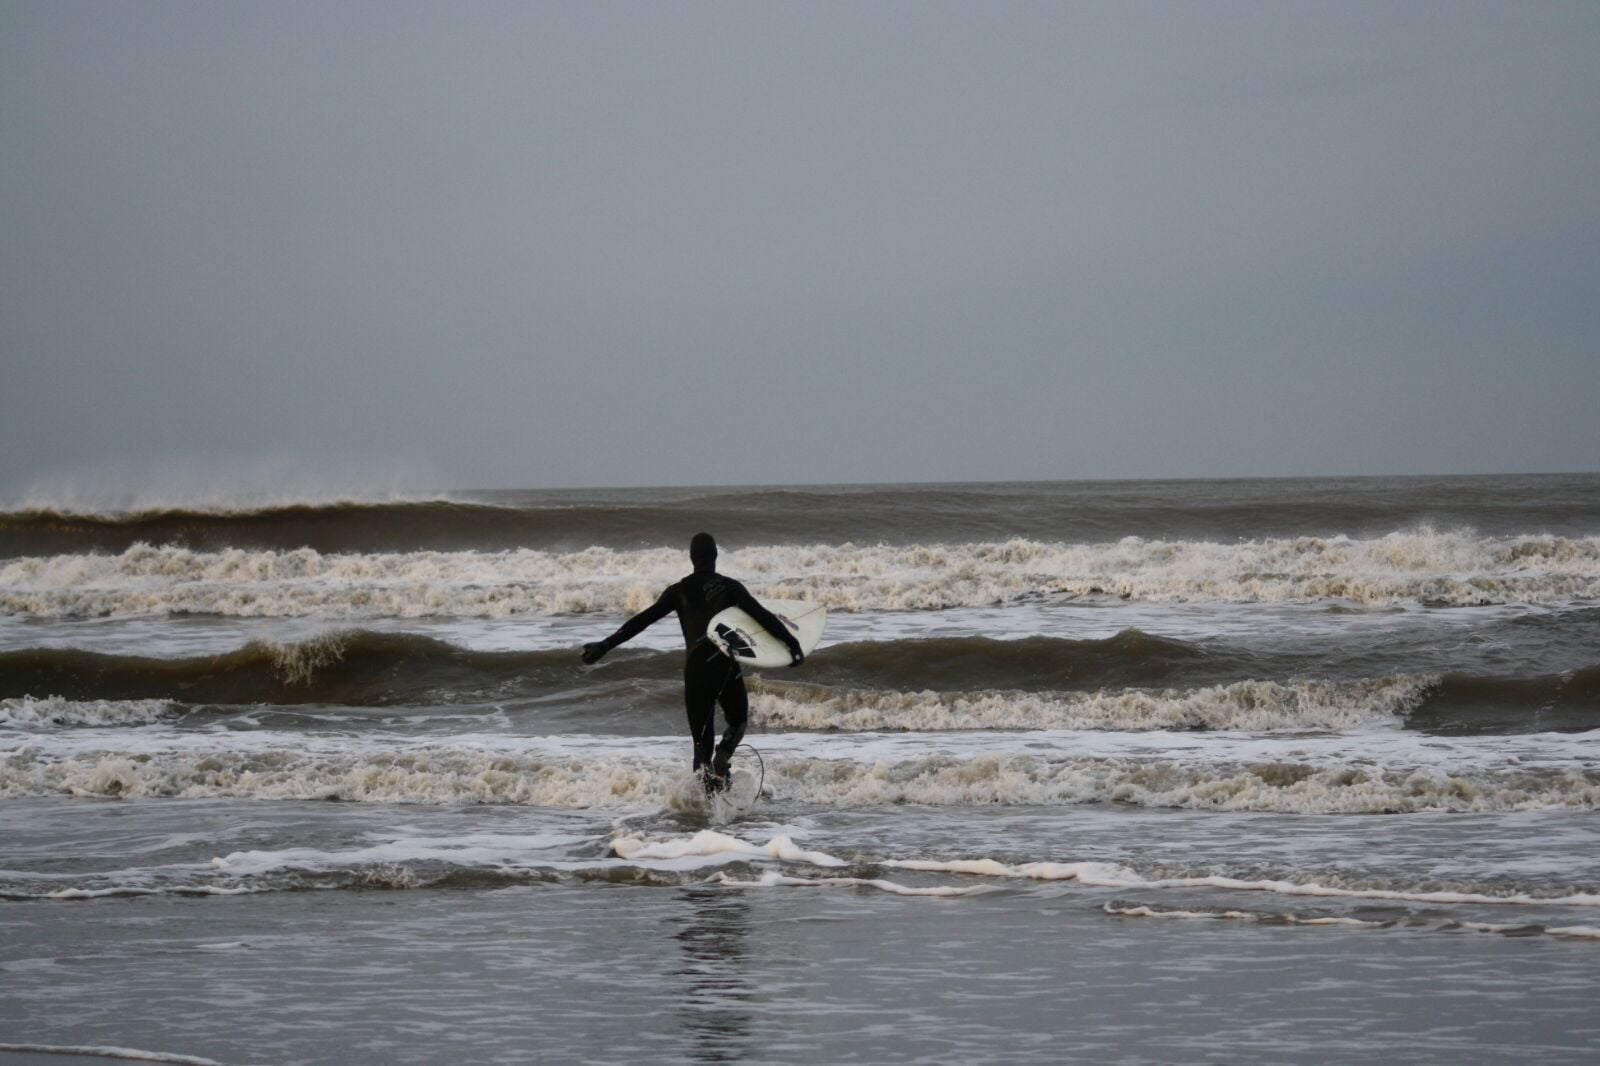 Surfing Langeoog Germany Winter Swell